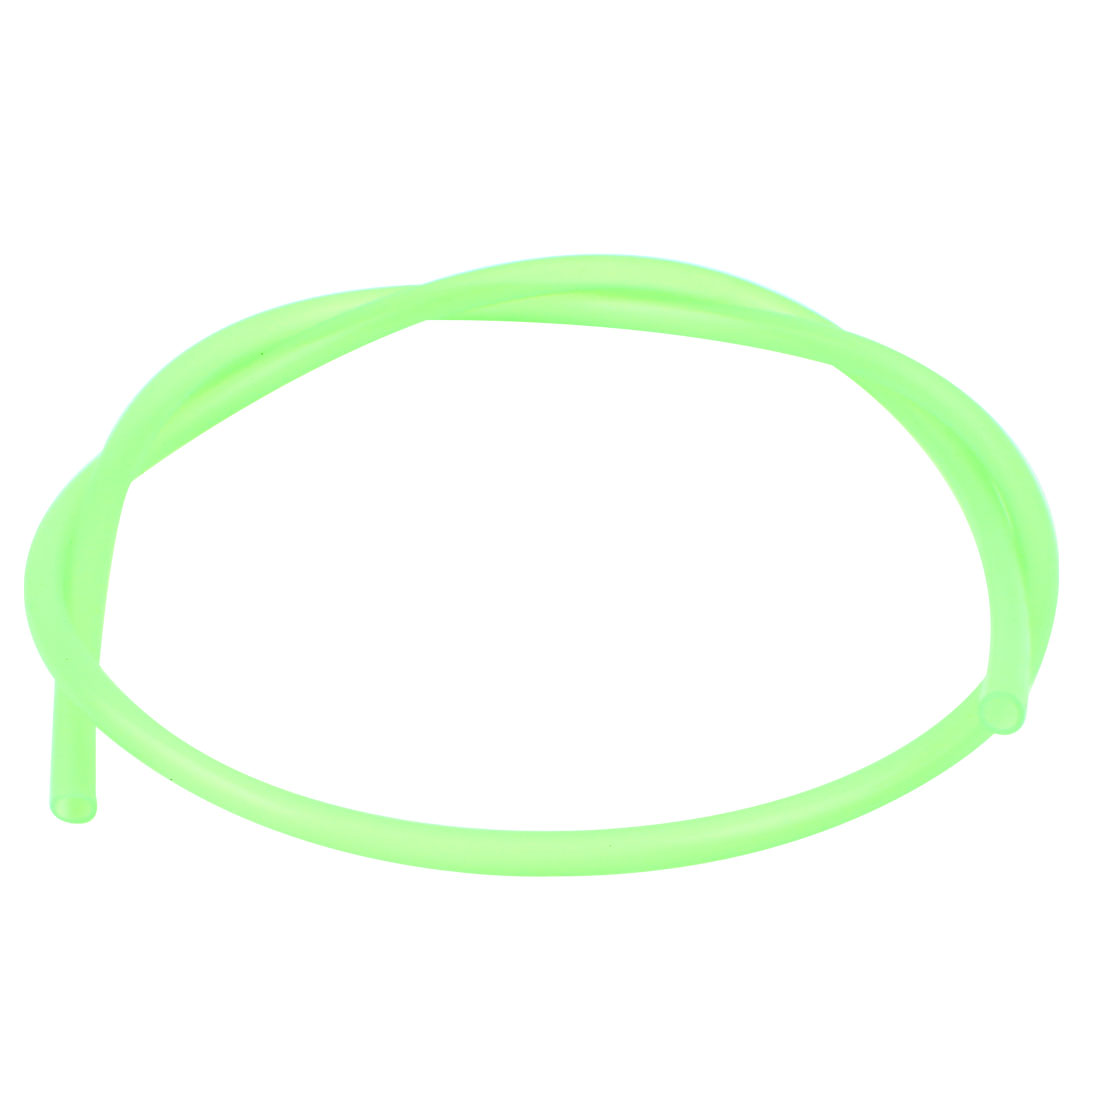 6mm ID x 8mm OD Flexible Hose Silicone Tubing Tube Pipe 3.3ft Green